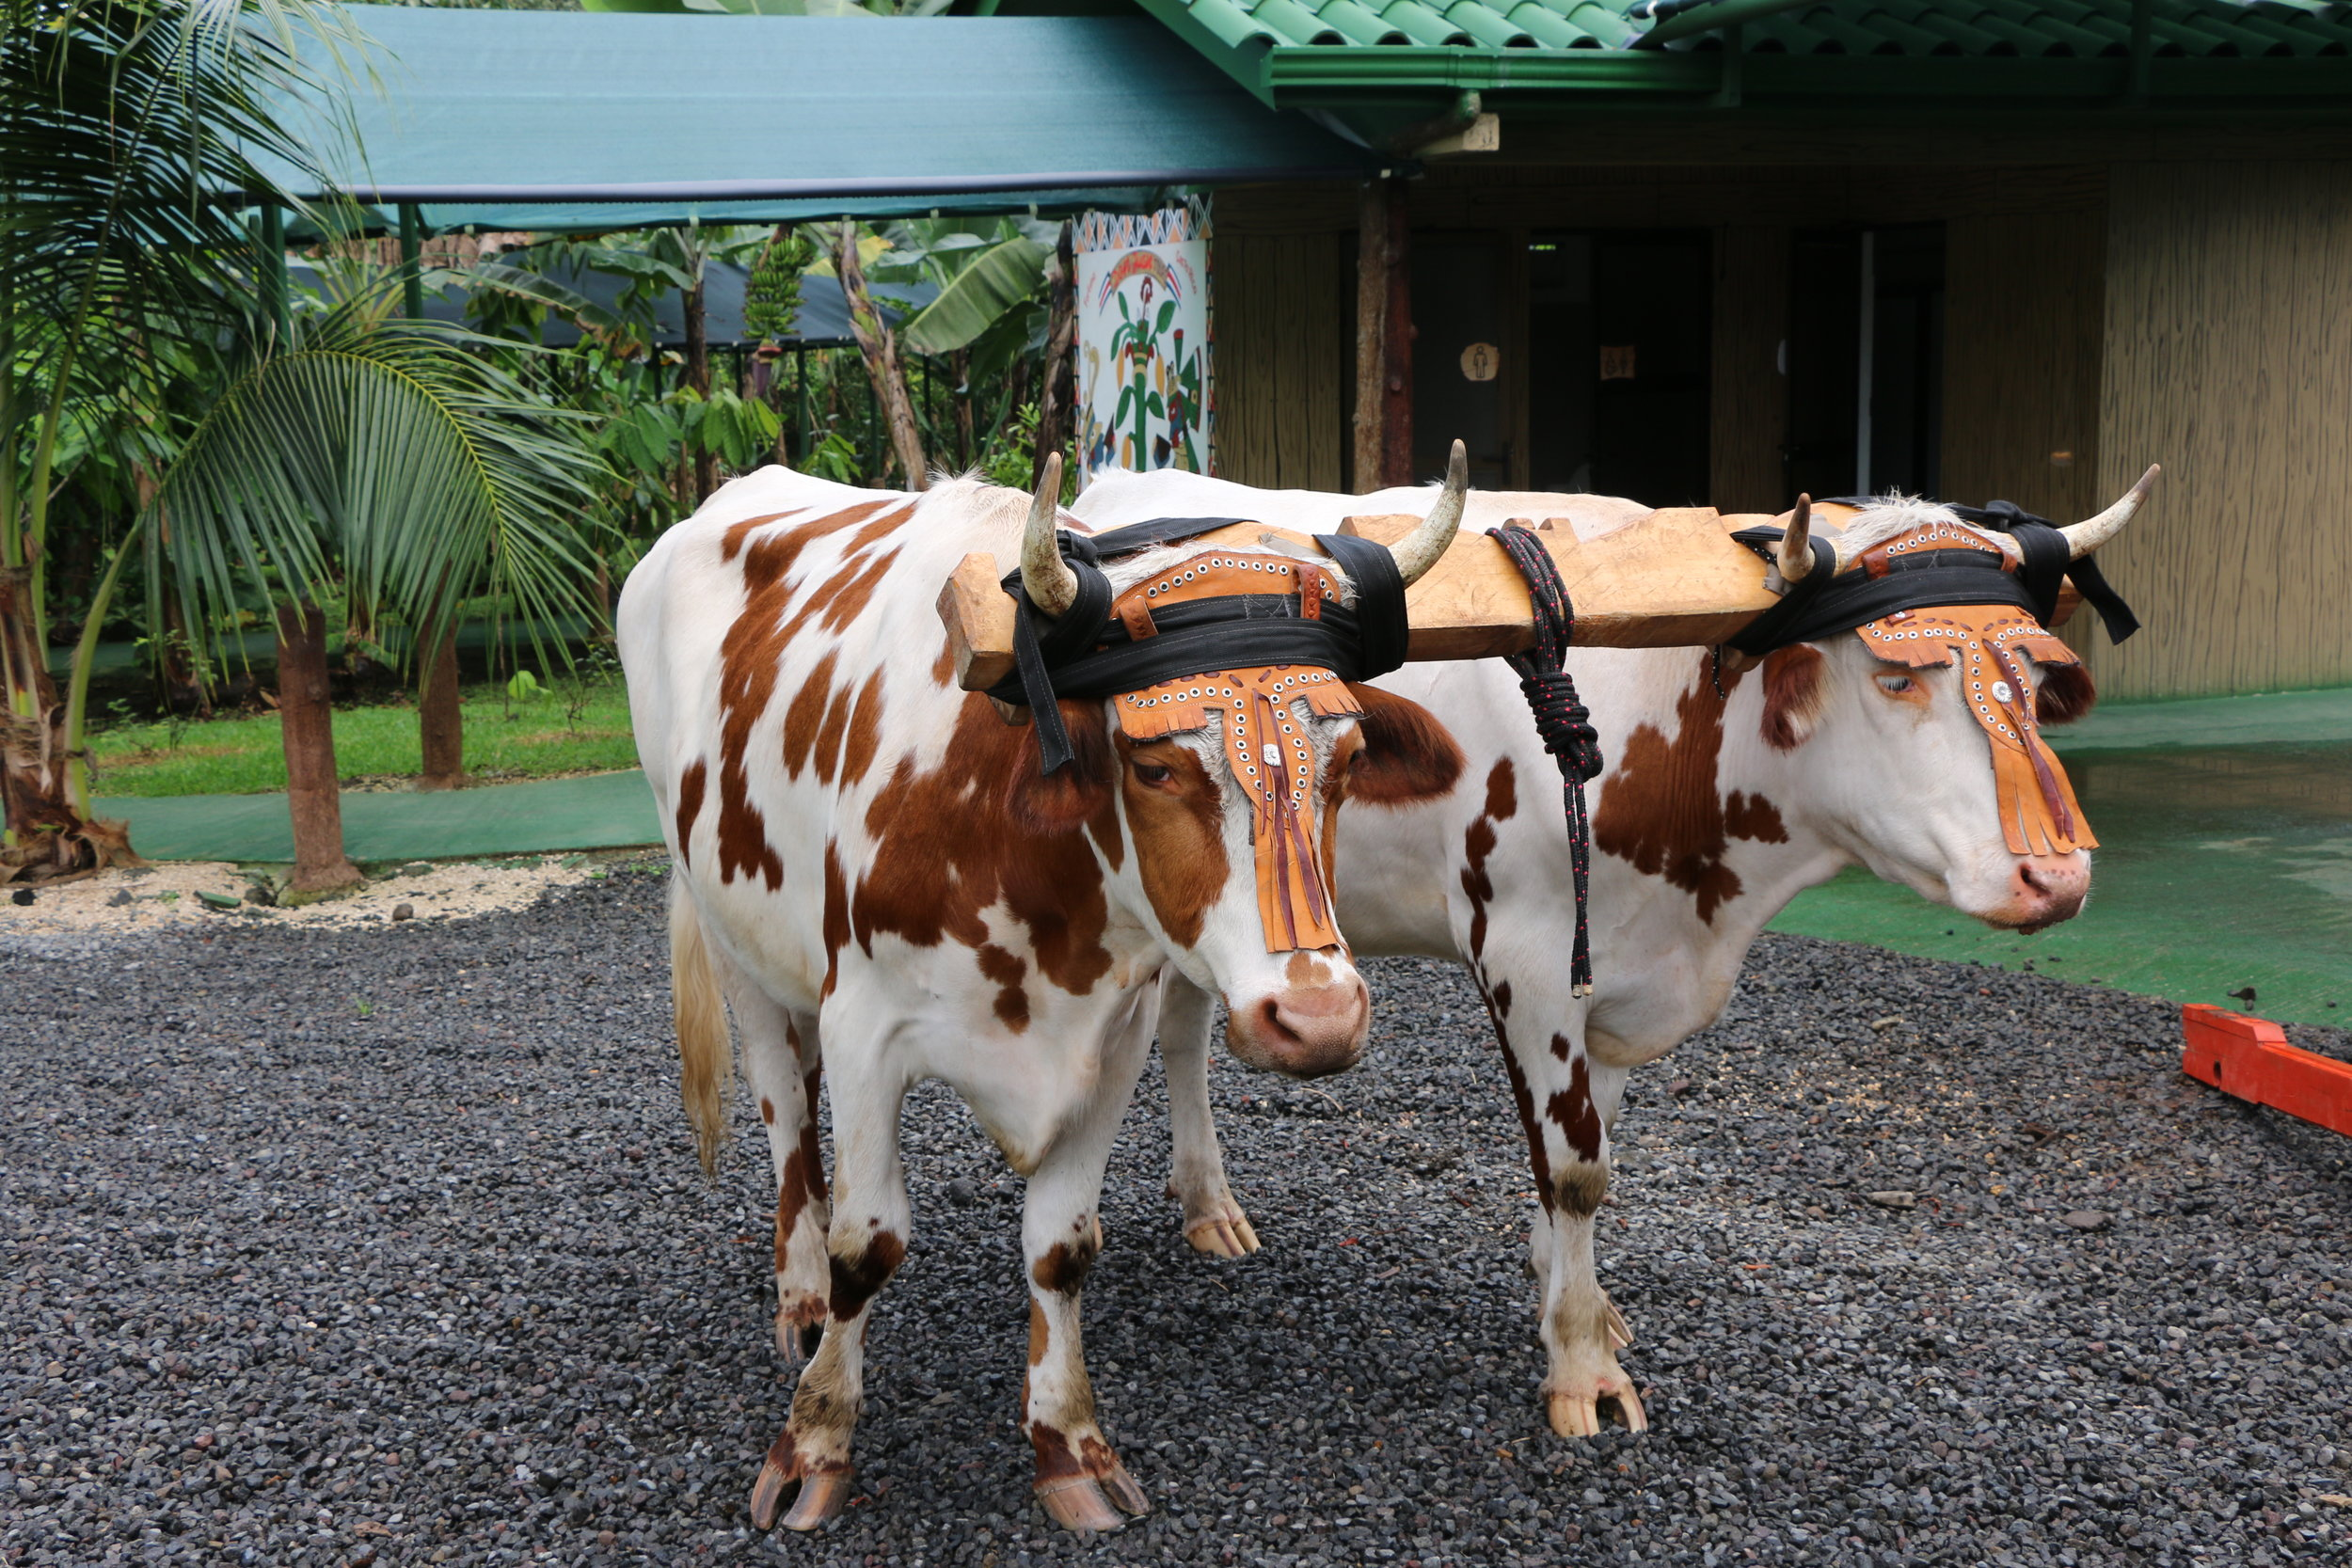 Here are the oxen living their best life. Their names are Gallo & Pinto, which also happens to be our new favorite breakfast dish (rice & beans), paired with some warm cacao drink or coffee.